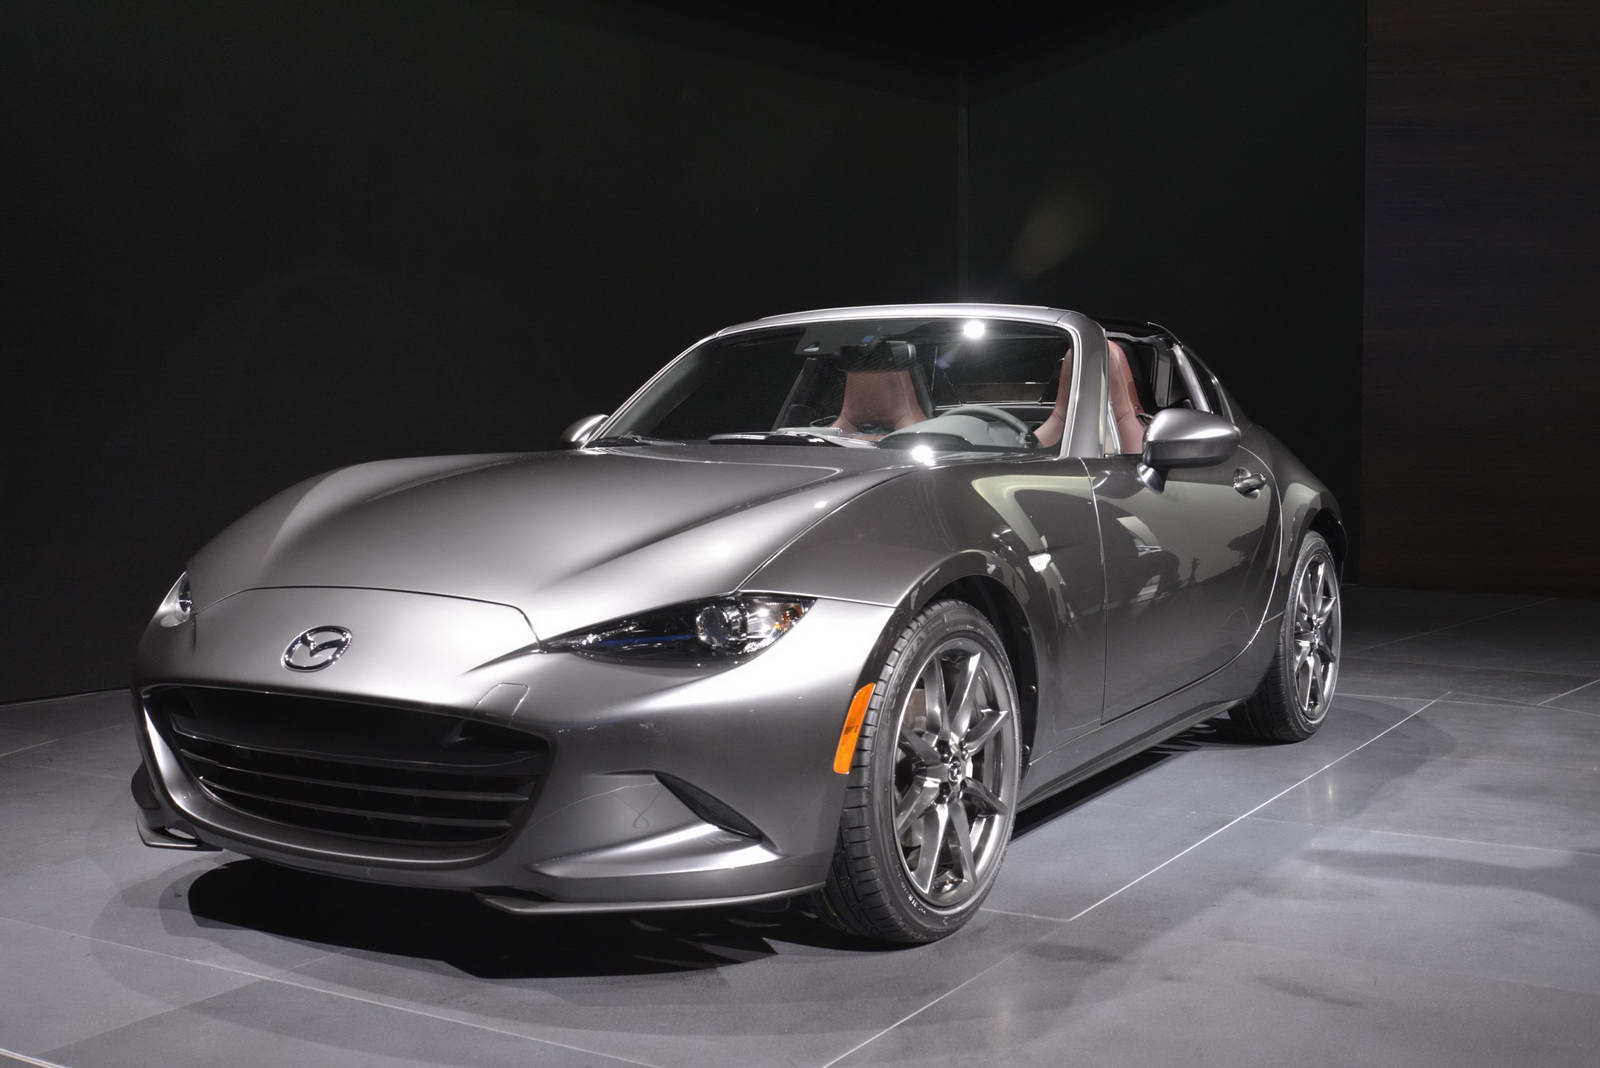 2017 mazda mx 5 gets hard for nyc calls itself the rf carscoops. Black Bedroom Furniture Sets. Home Design Ideas